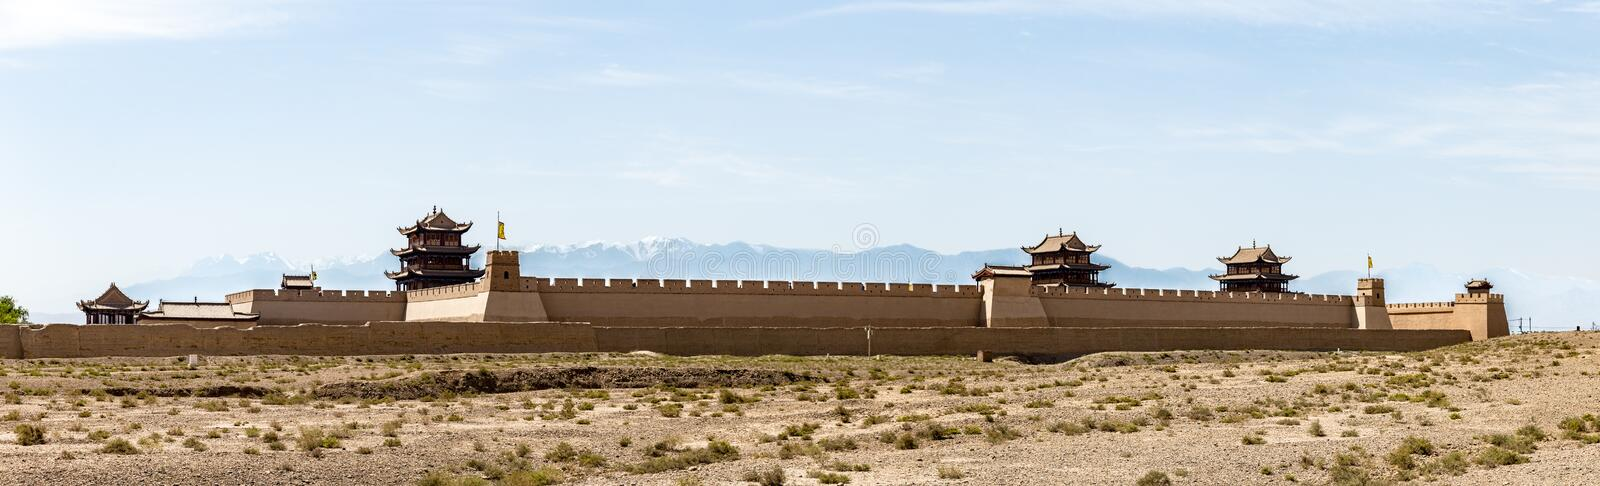 View of Jiayuguan Fort with snow capped mountains on the backgrond, Gansu, China stock photo